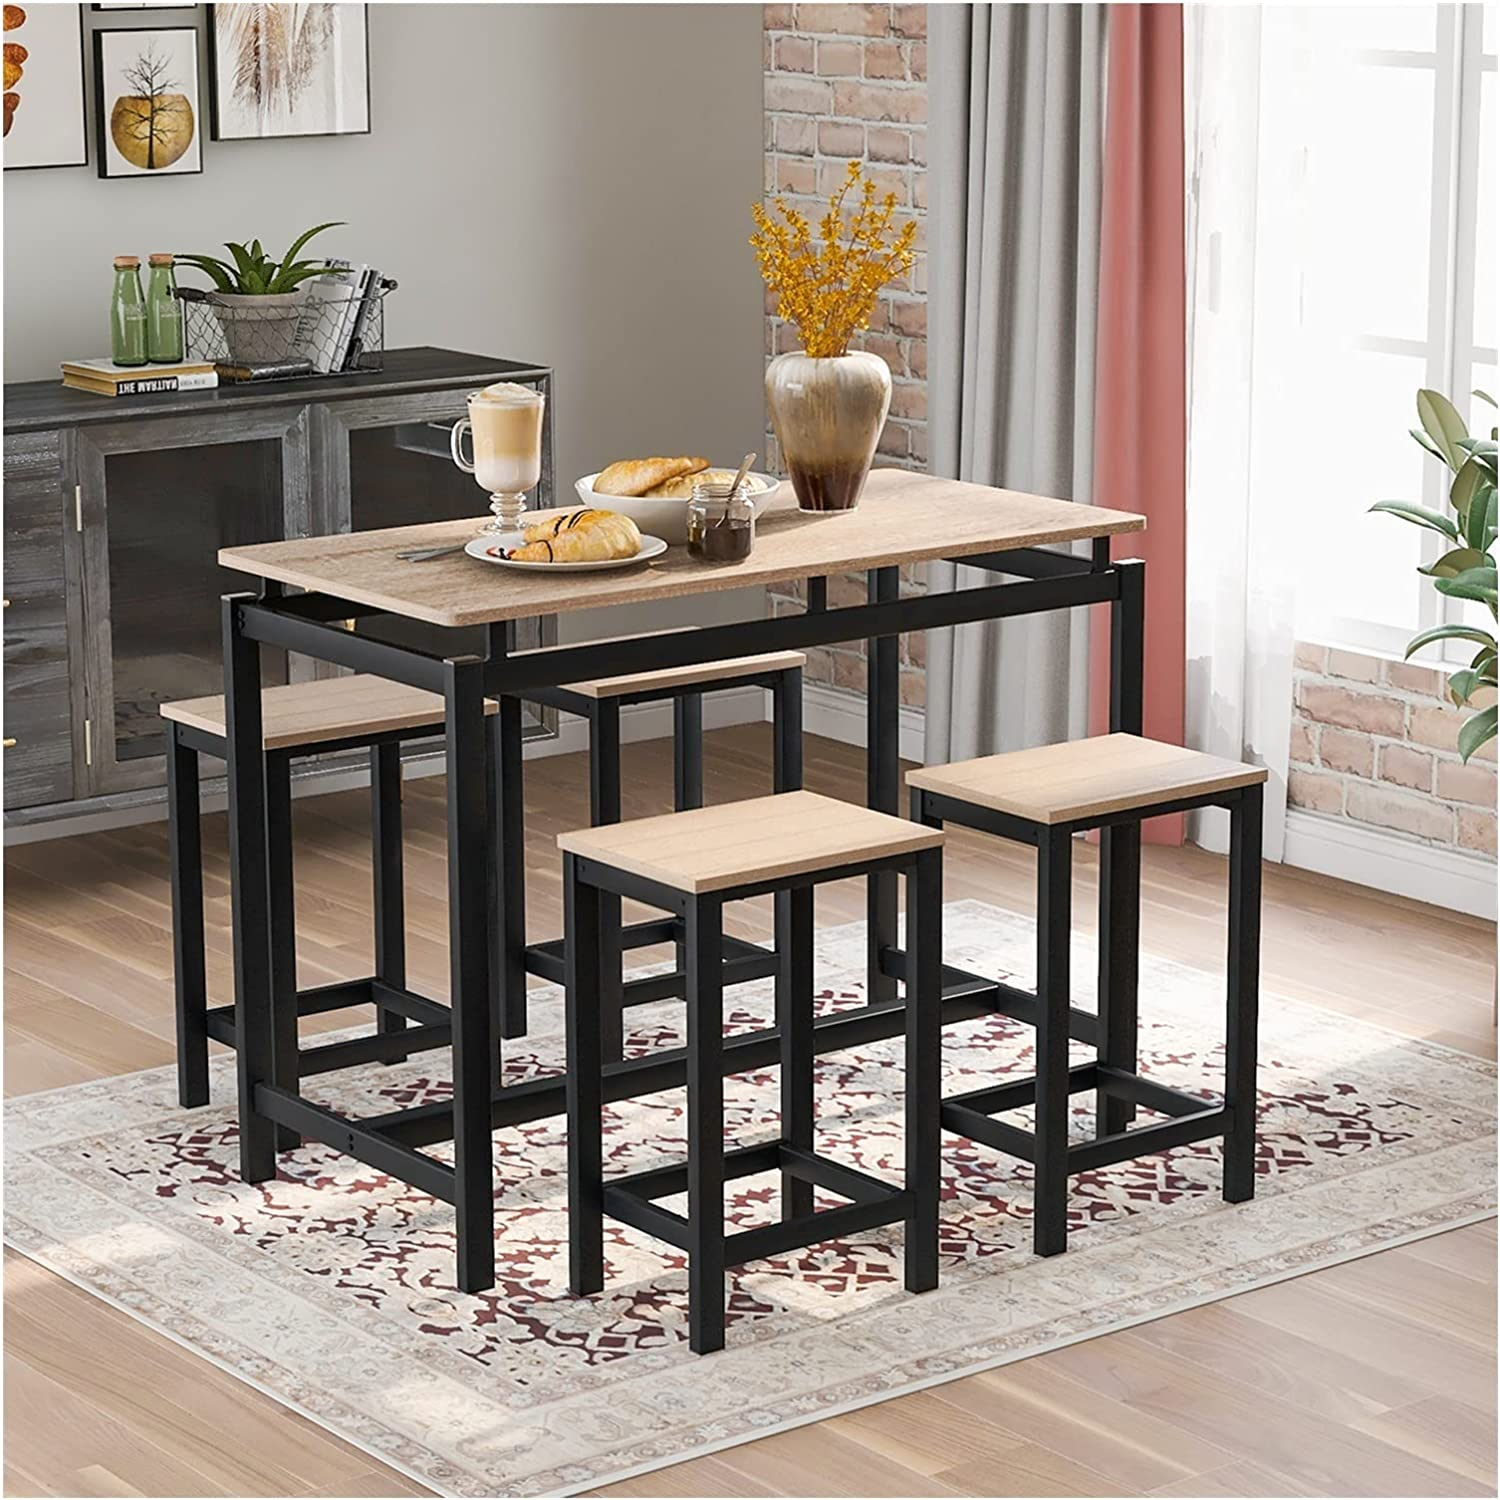 LYUN Dining Table Fashionable Set with Special sale item 4 Practical Chairs Ro Piece 5